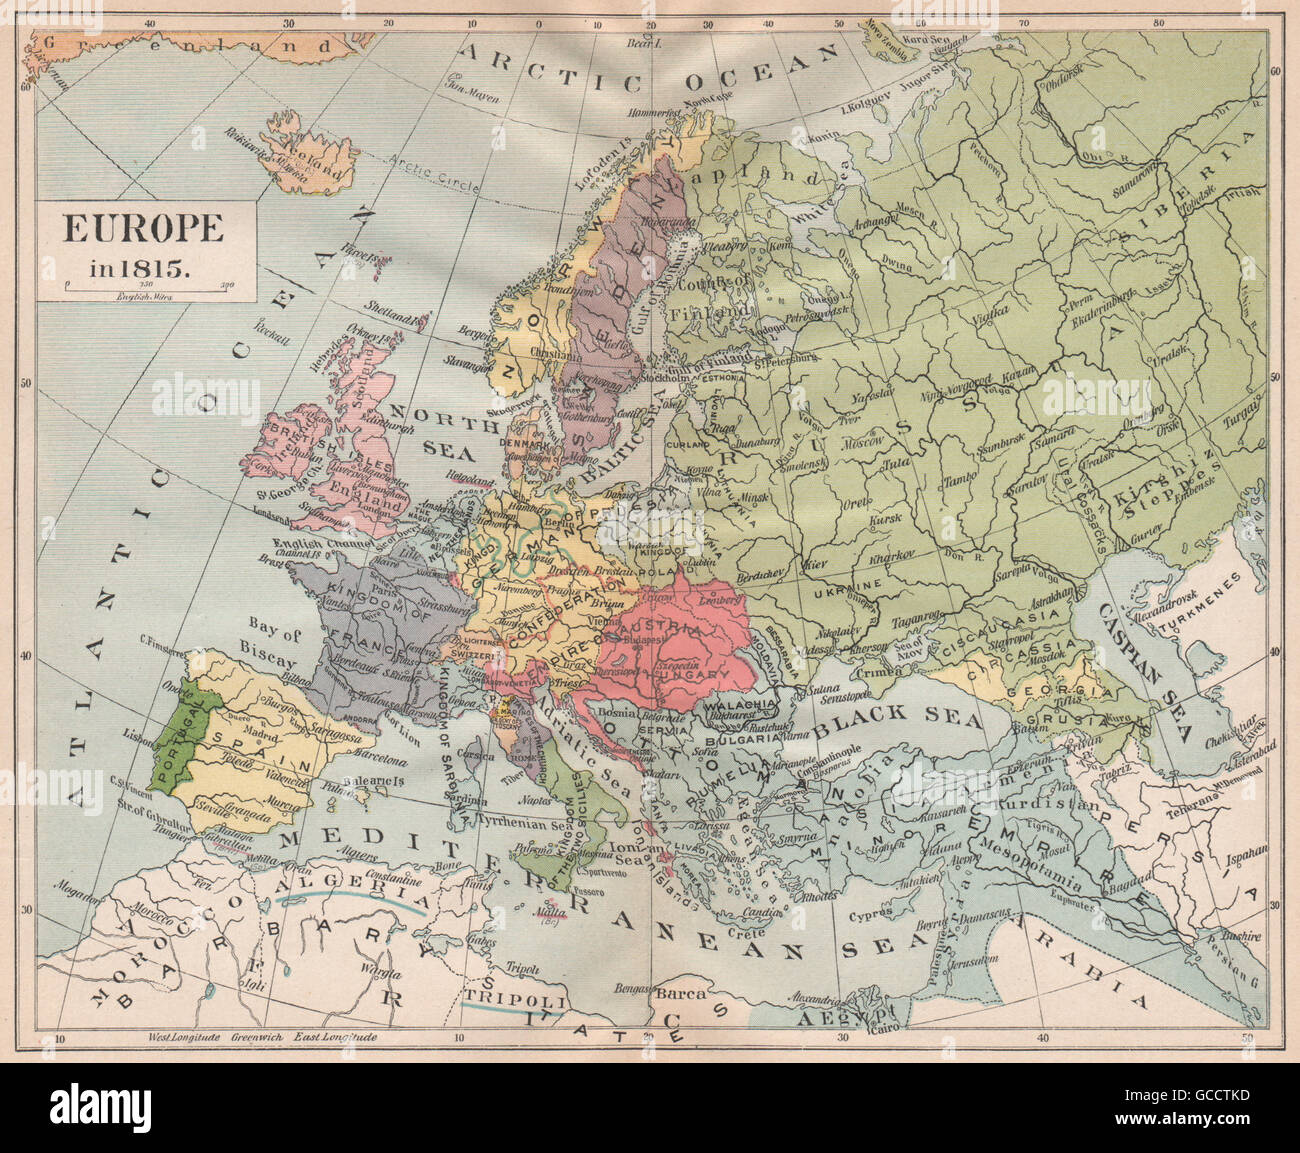 EUROPE 1815. Austria-Hungary. German Confederation. Ottoman Empire ...